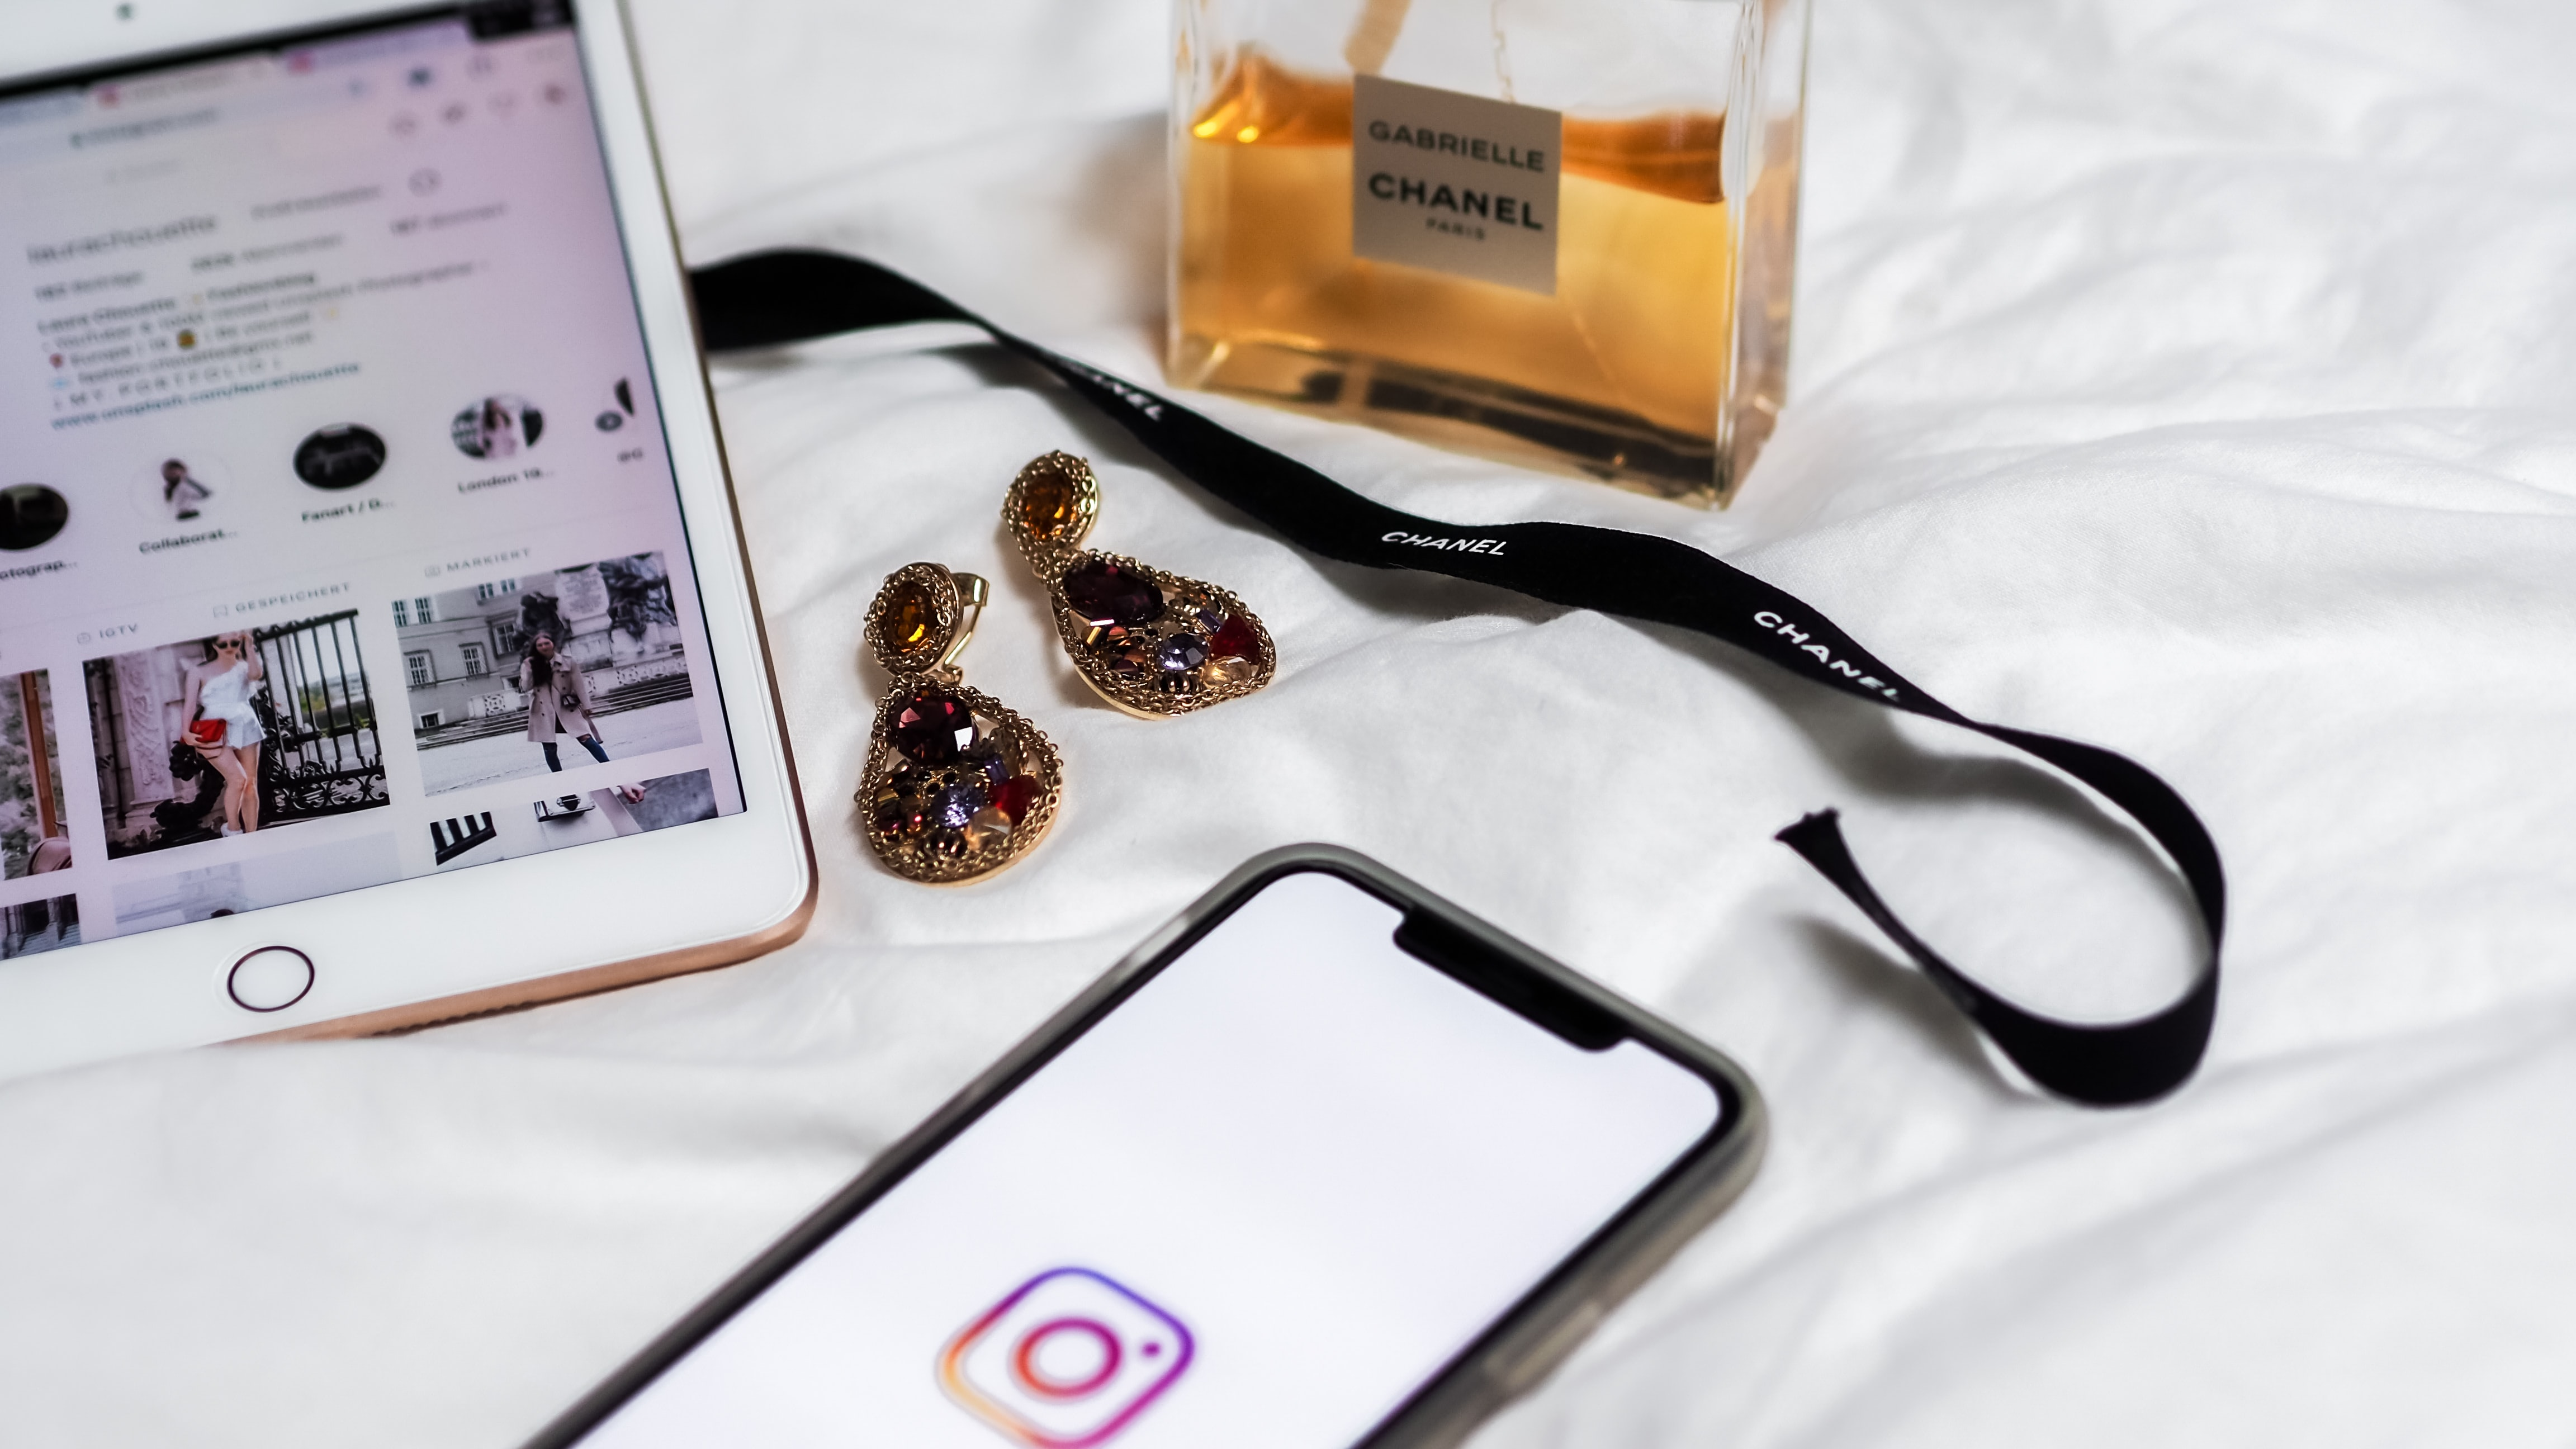 earrings and perfume next to mobile devices with white background